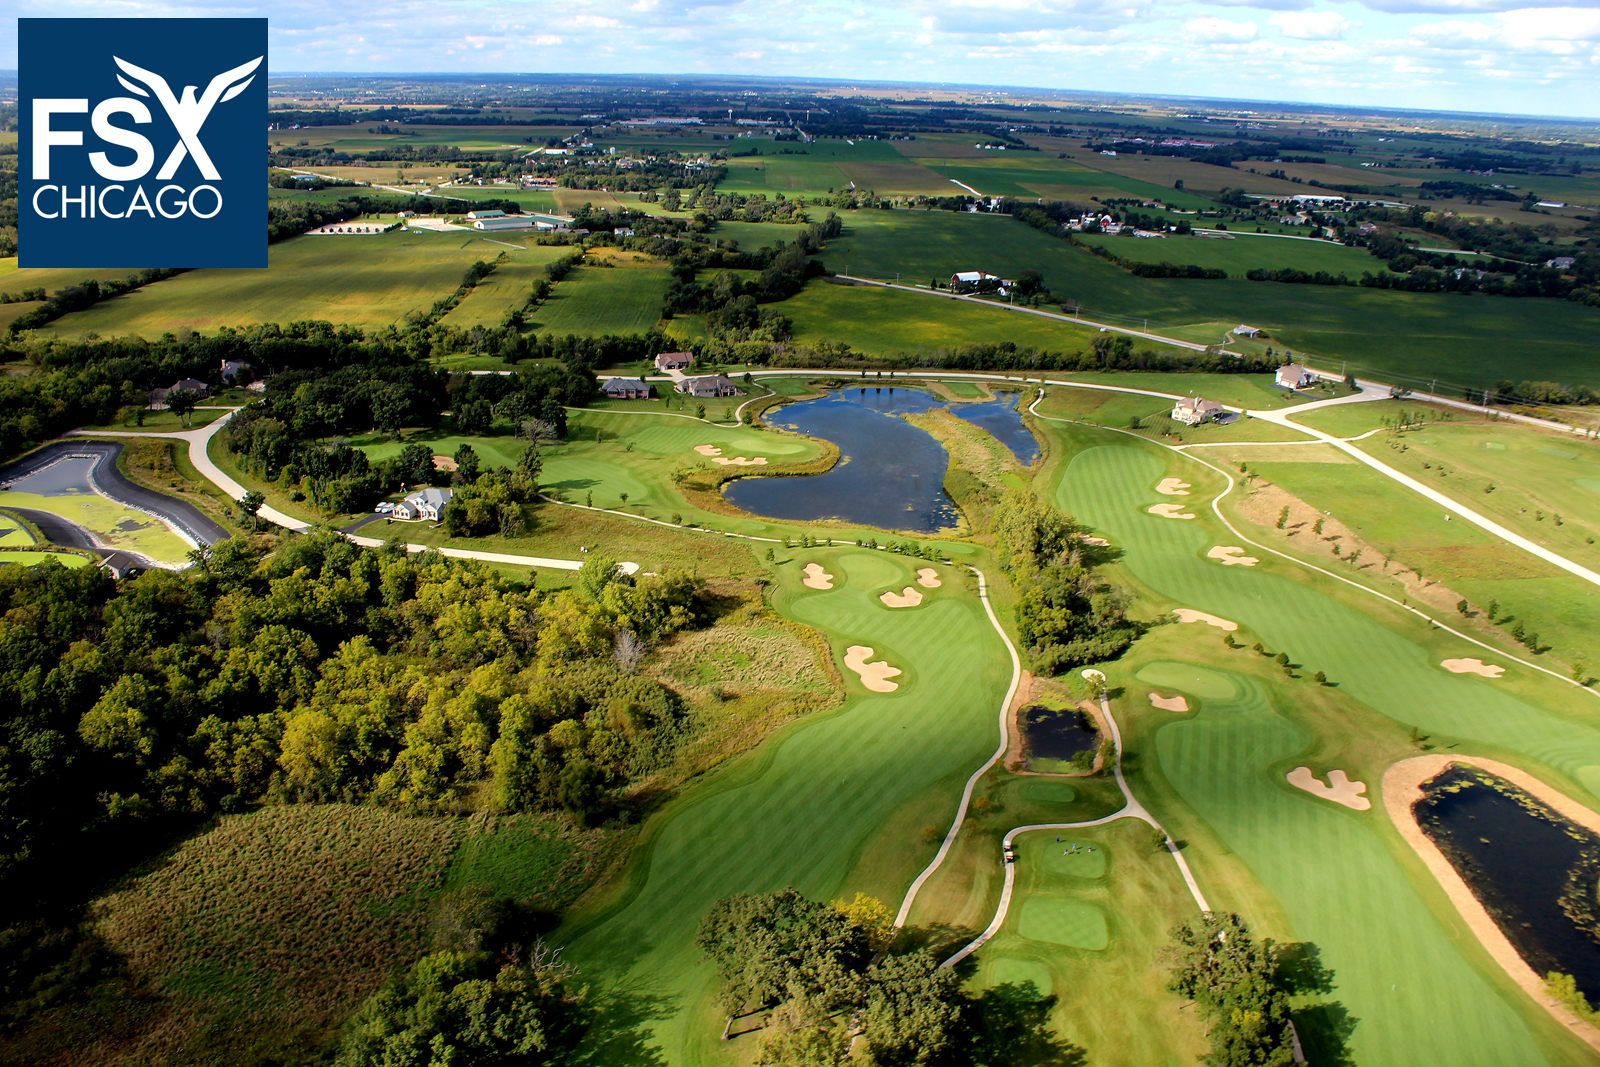 Golf Course - Aerial Photography - Call 708-299-8246